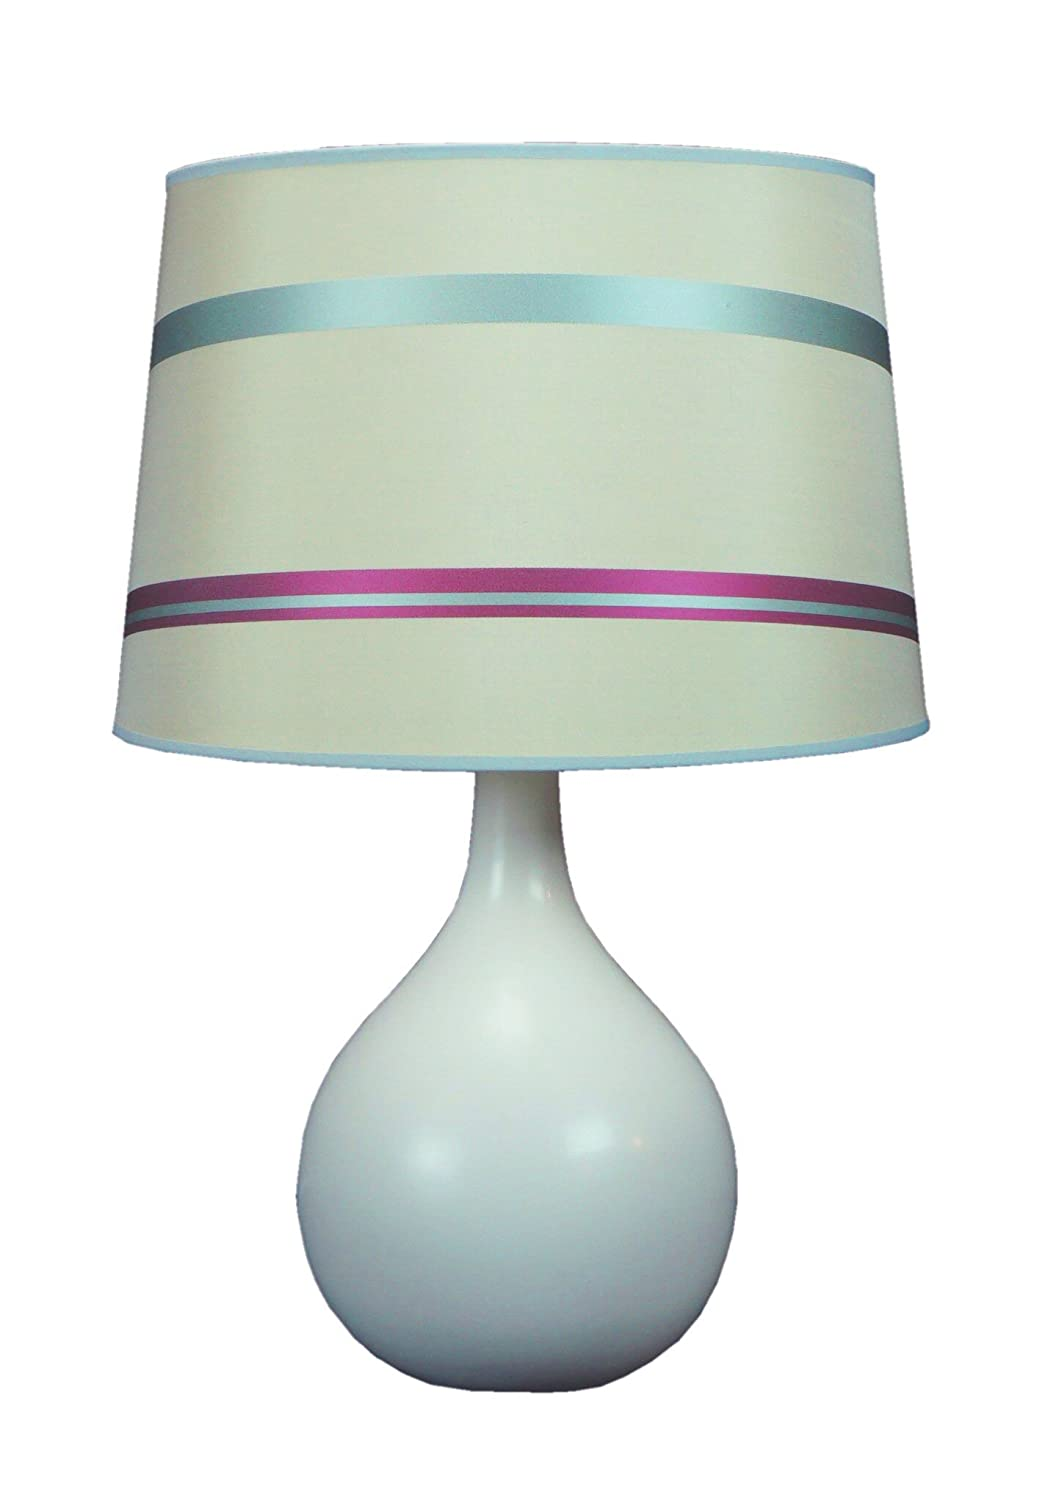 Ava Beige Table Lamp By Laura Ashley Beige Finish With 14 Inch